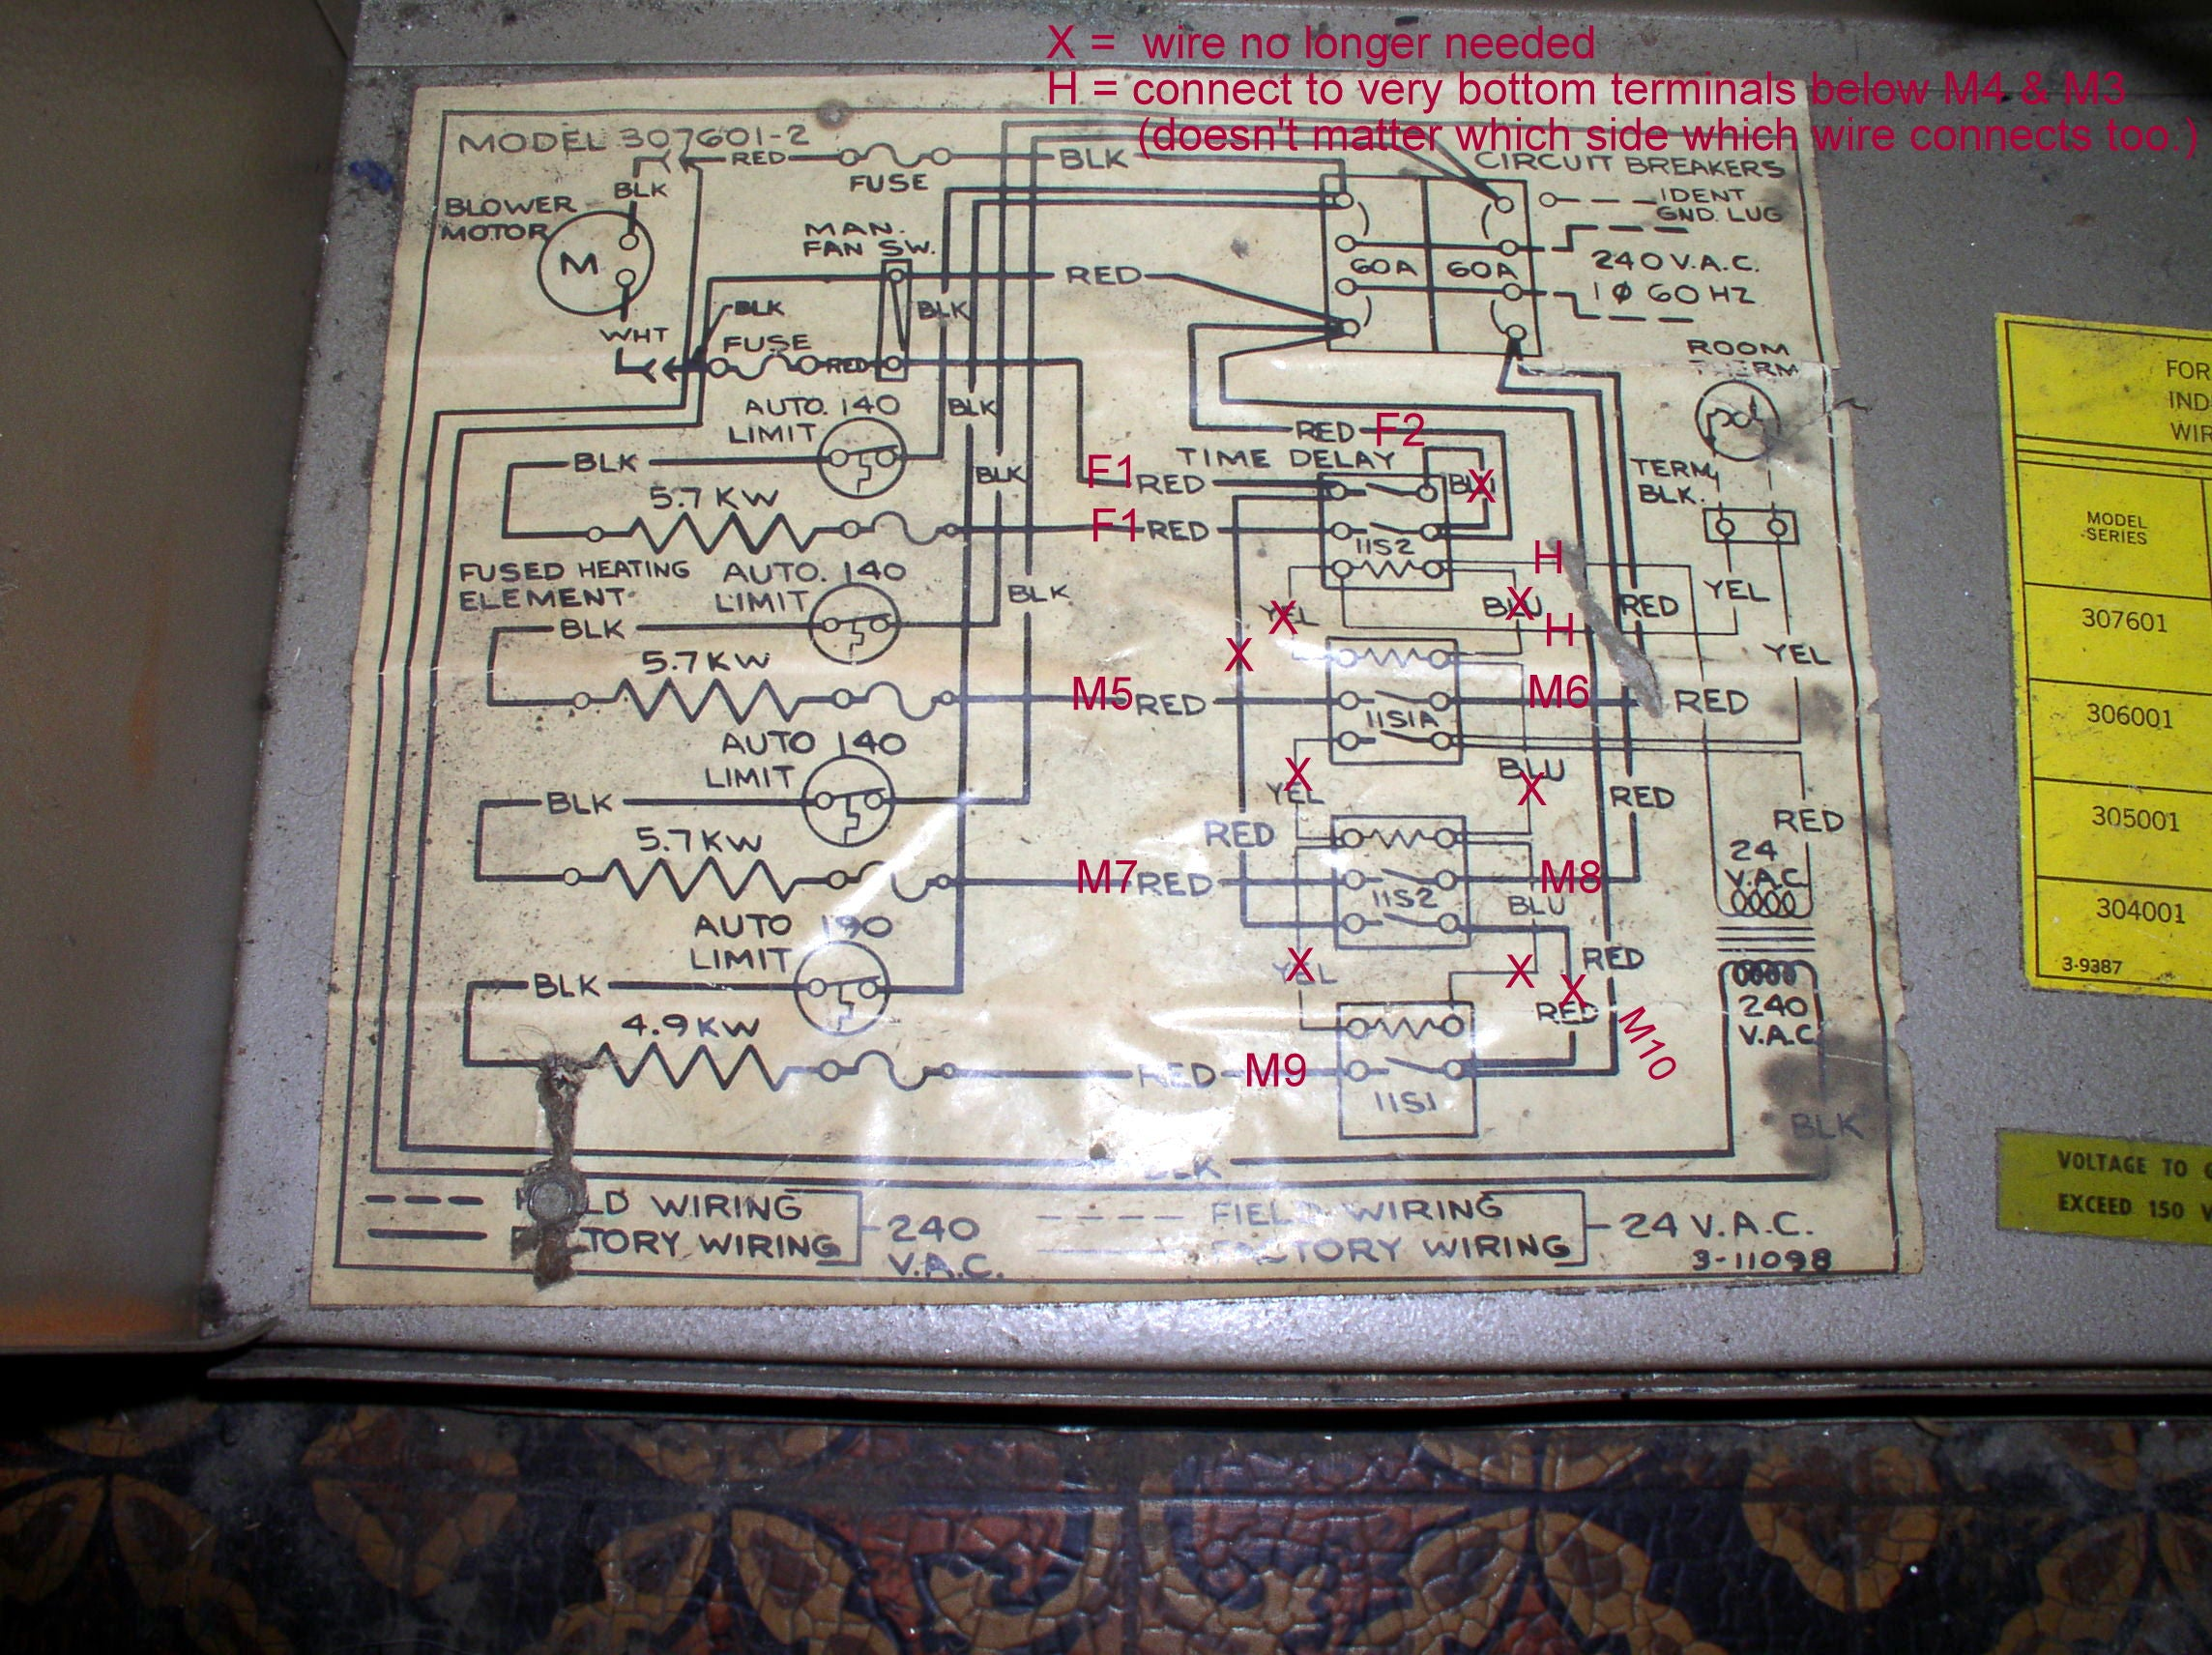 How To Wire An Air Conditioner For Control 5 Wires Readingratnet ...